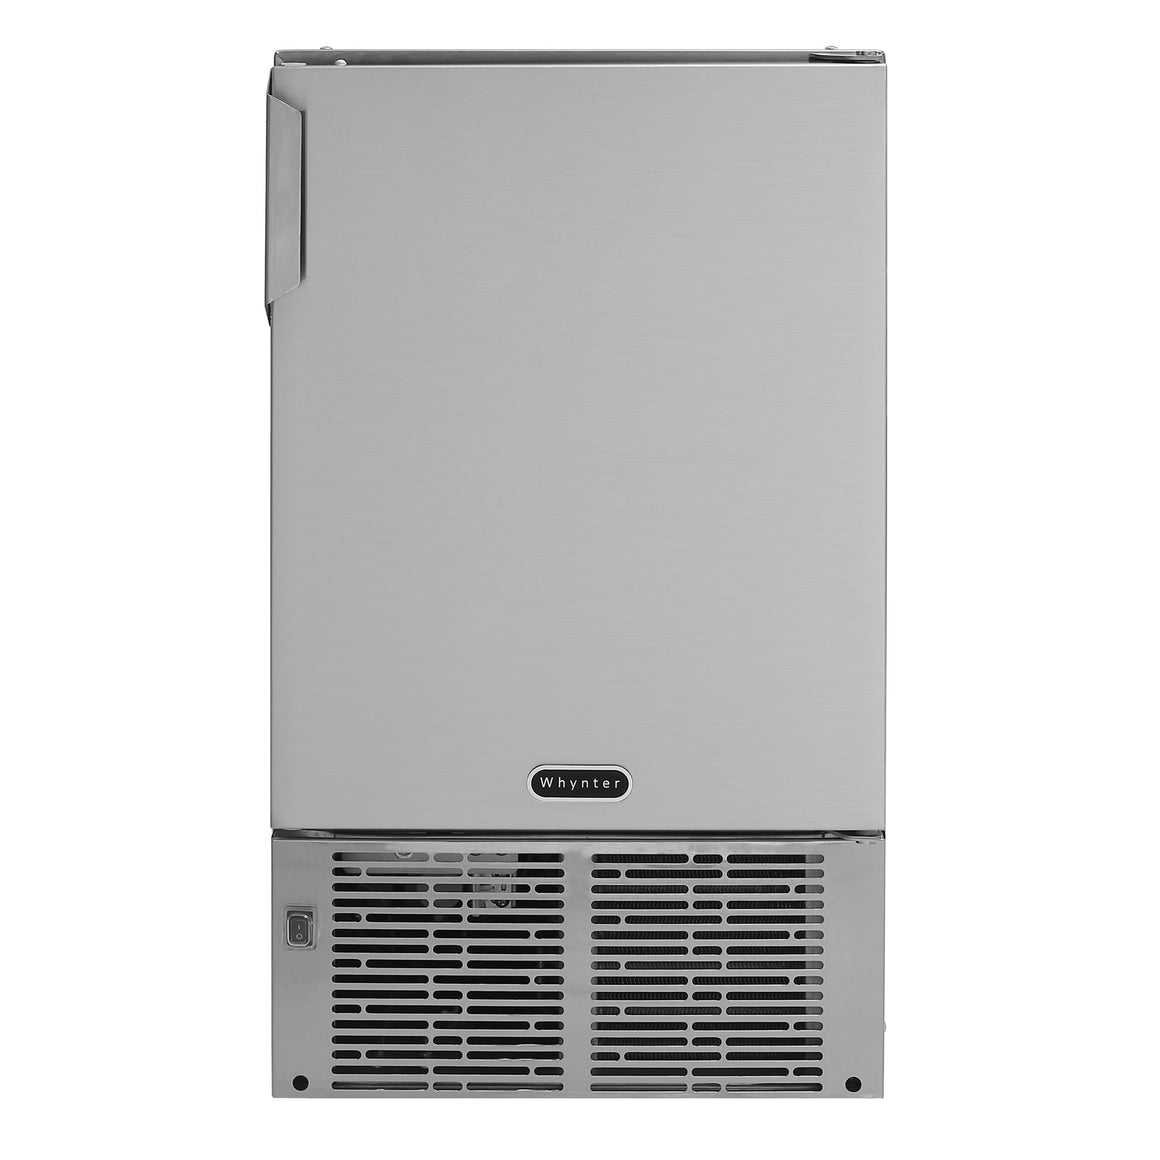 "Whynter 14"" Undercounter Automatic Stainless Steel Marine Ice Maker 23lb Daily Output MIM-14231SS - Wine Cooler City"